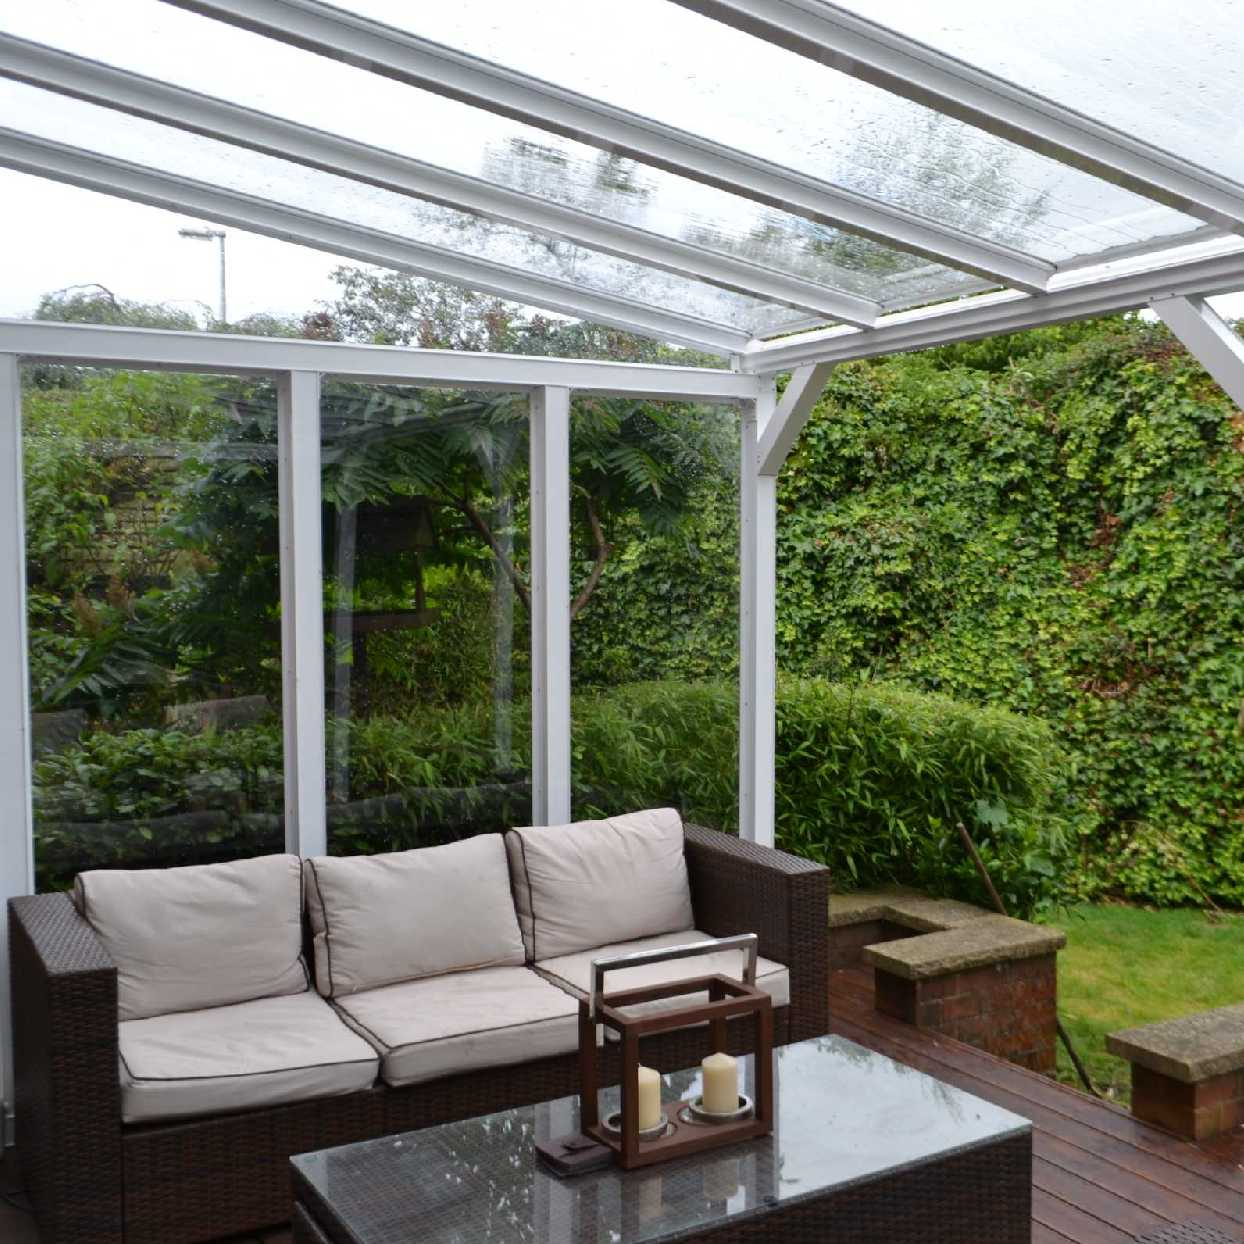 Omega Smart White Lean-To Canopy with 6mm Glass Clear Plate Polycarbonate Glazing - 7.7m (W) x 2.0m (P), (4) Supporting Posts